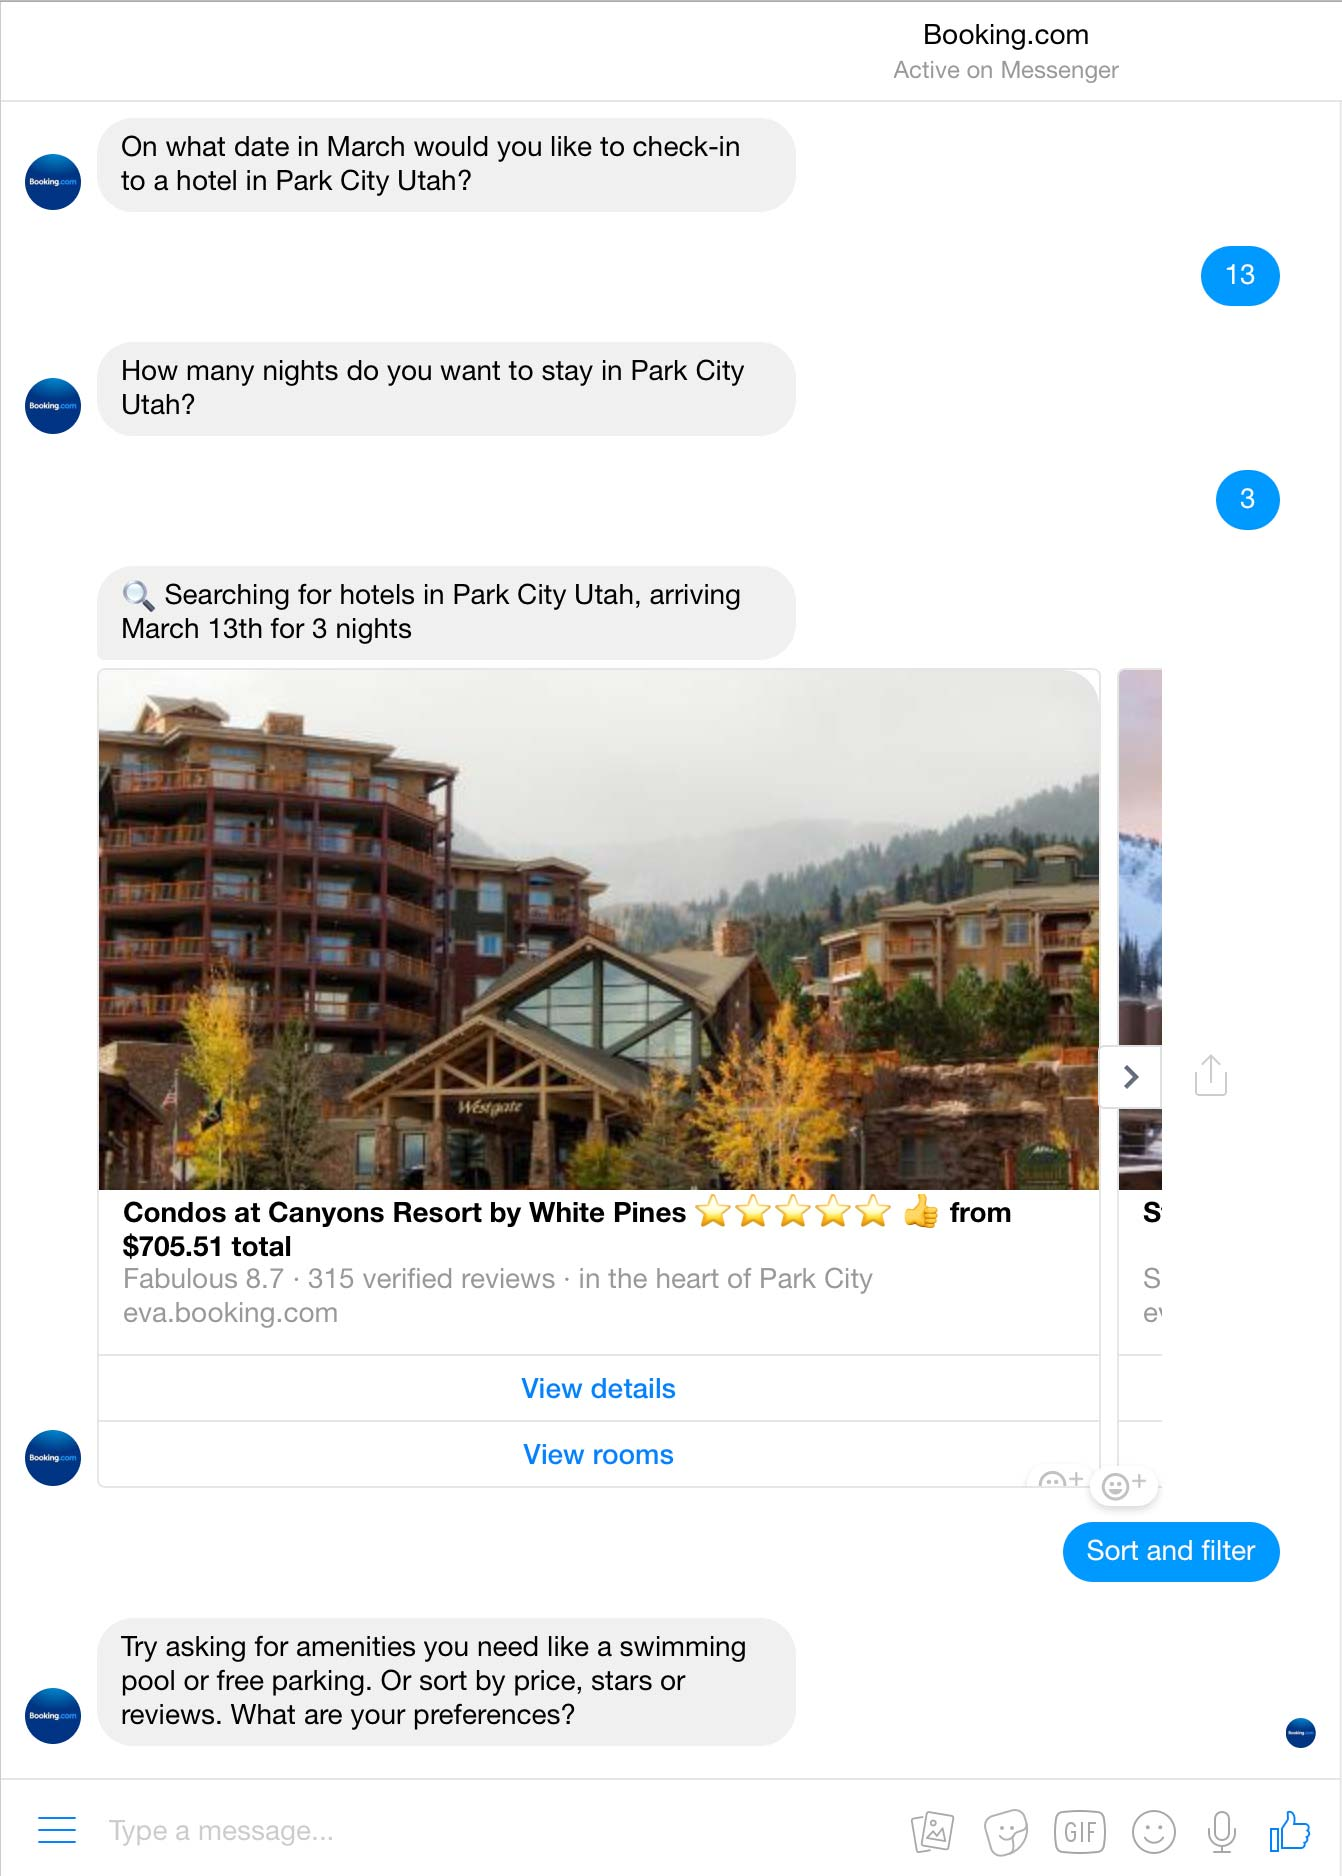 Booking.com using chatbot to find hotels.